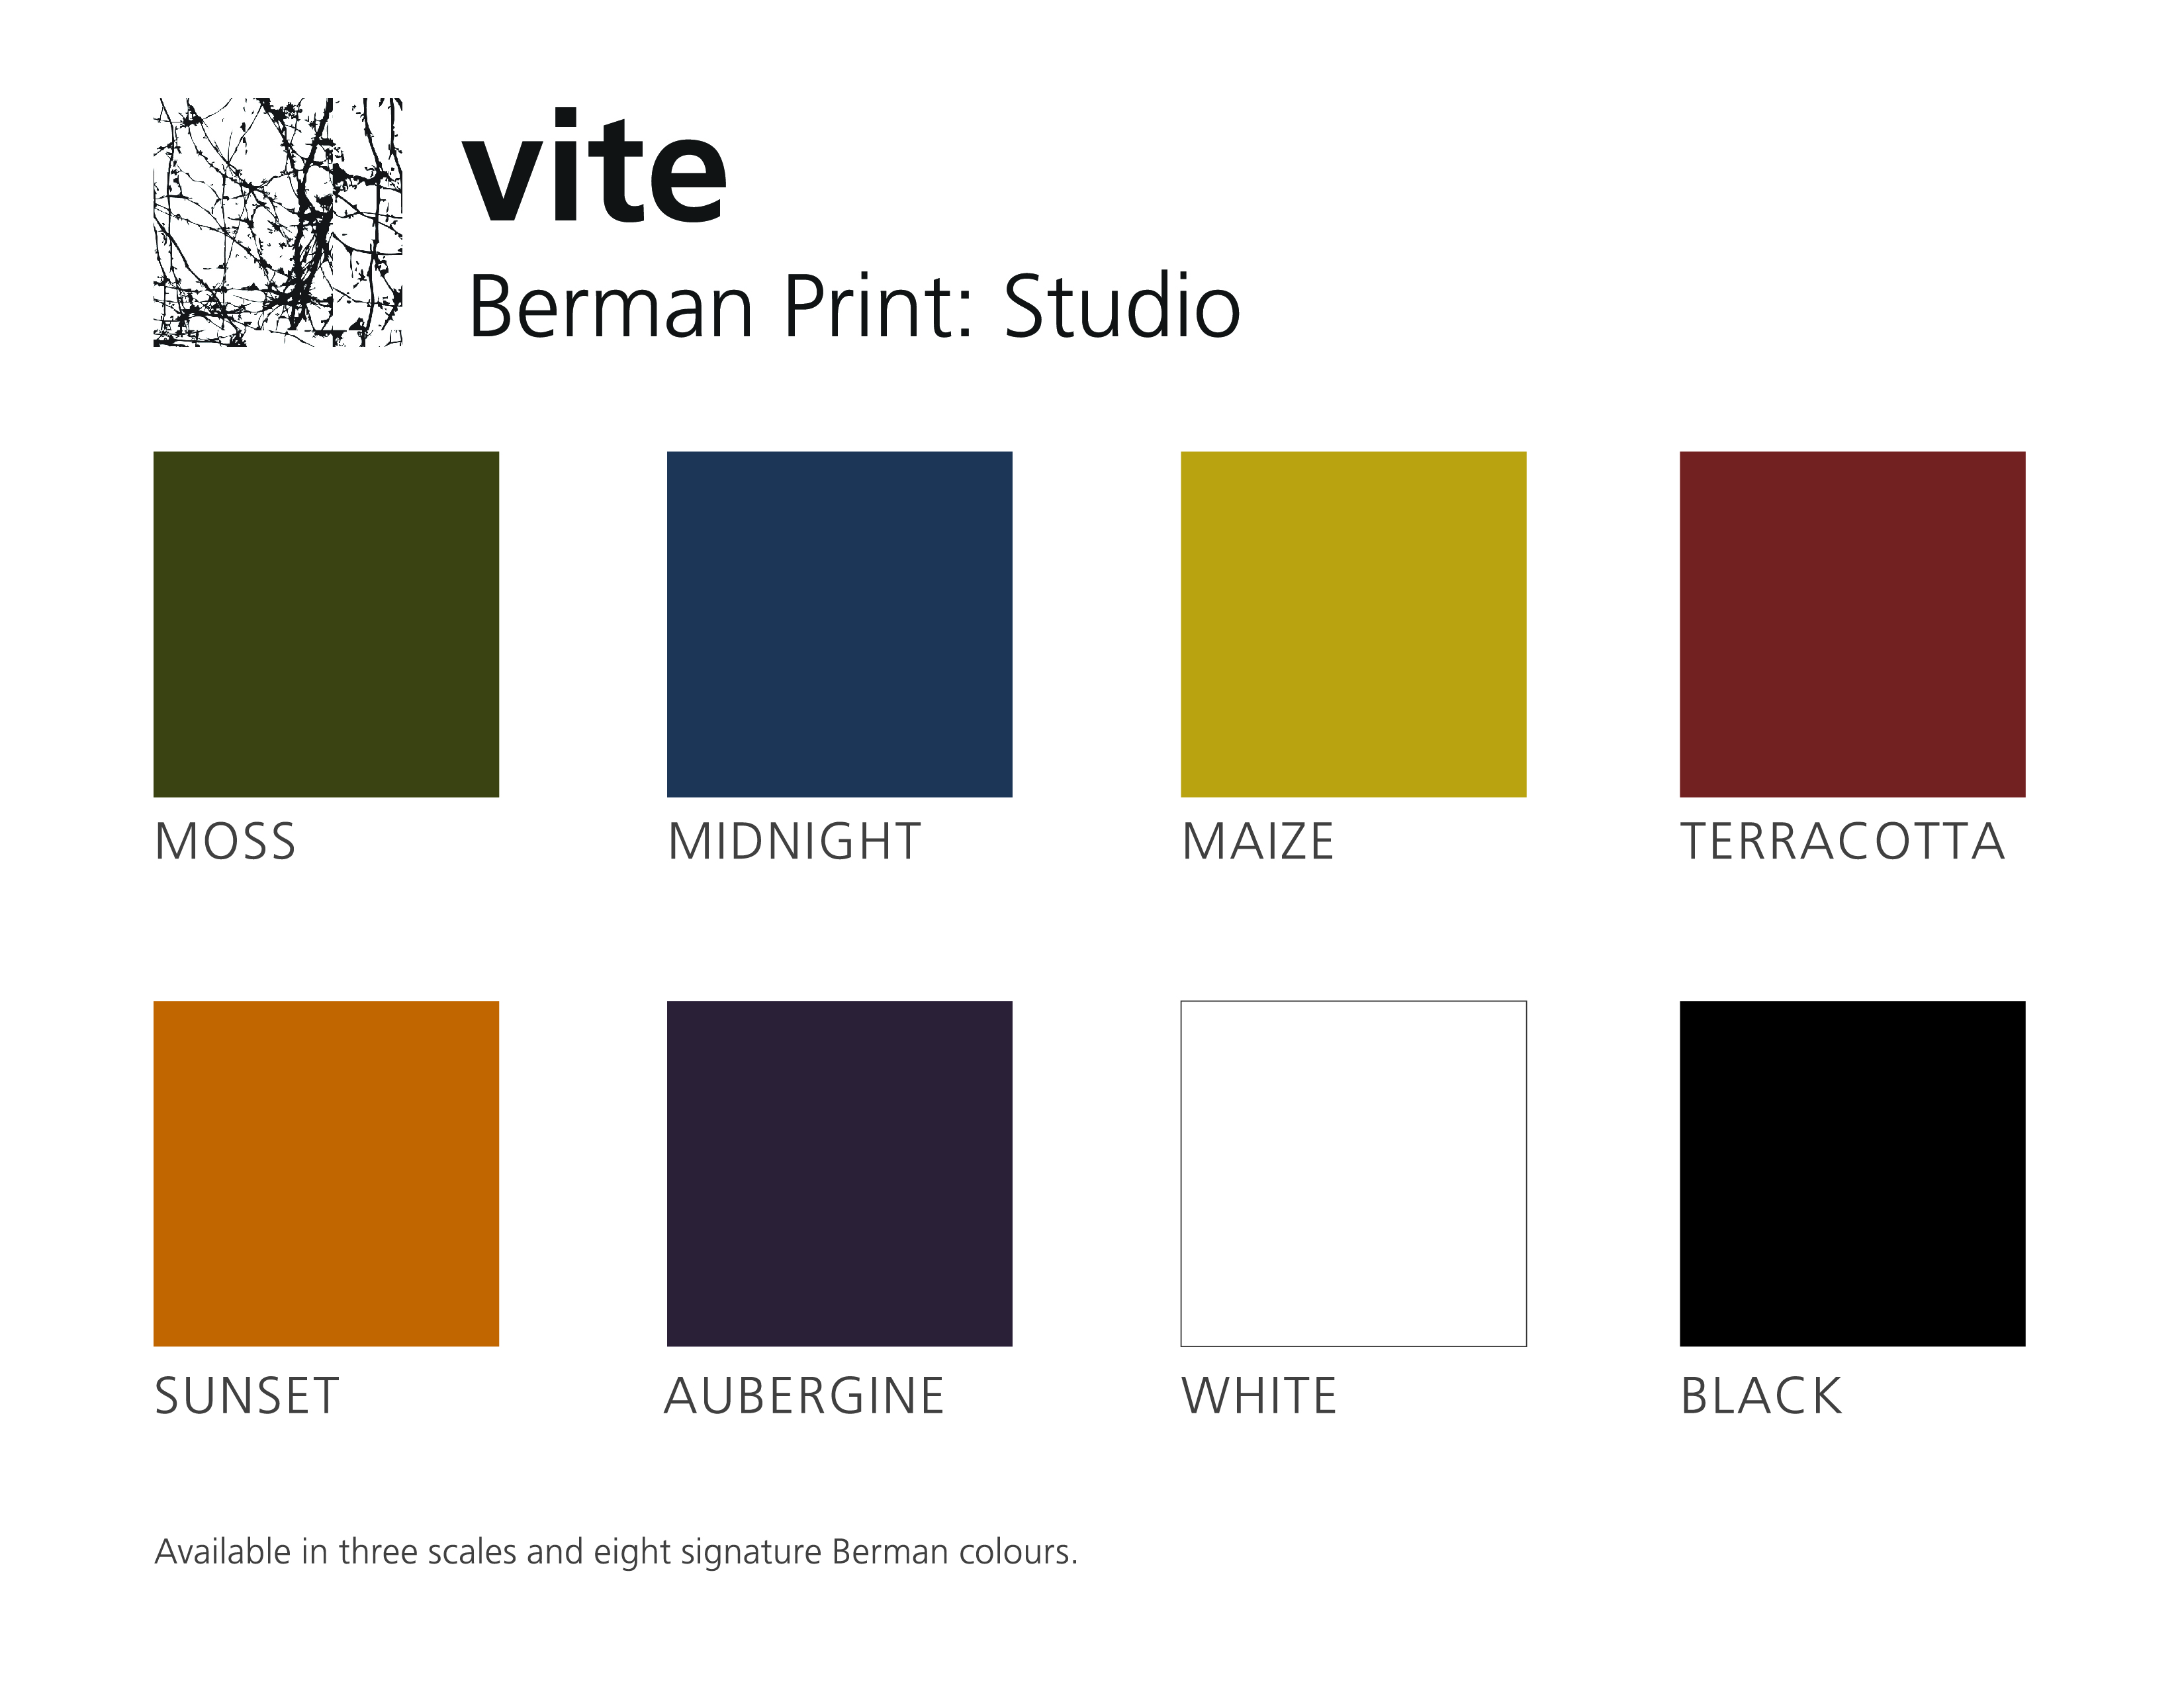 Vite is offered in eight signature Berman colourways and three different scales of the pattern.